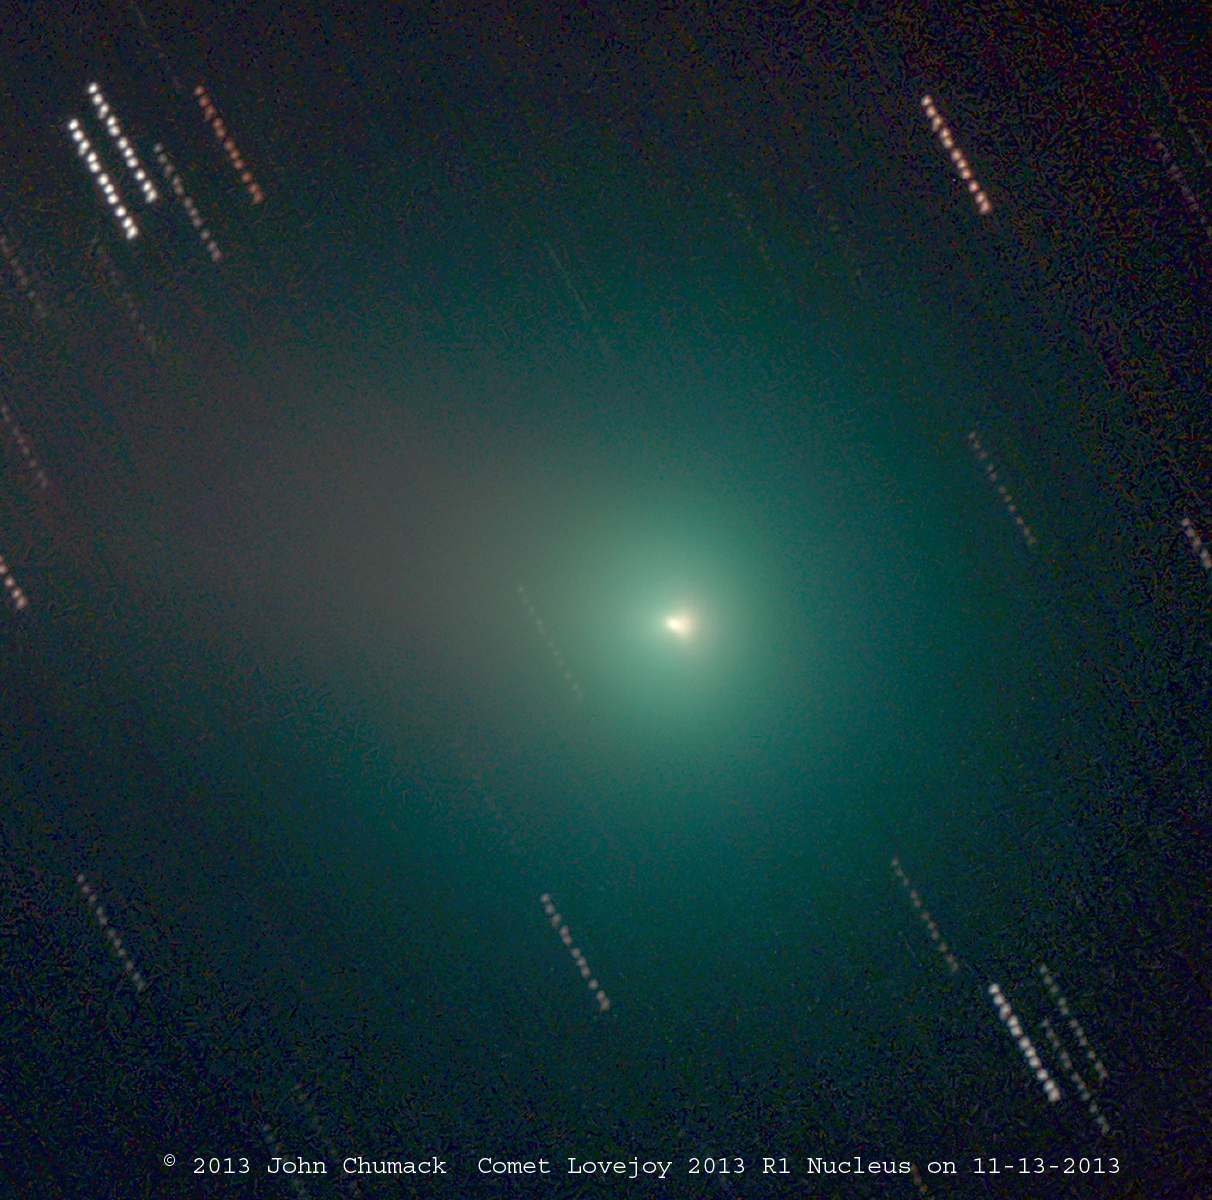 Comet Lovejoy Nucleus by John Chumack - Nov. 13, 2013